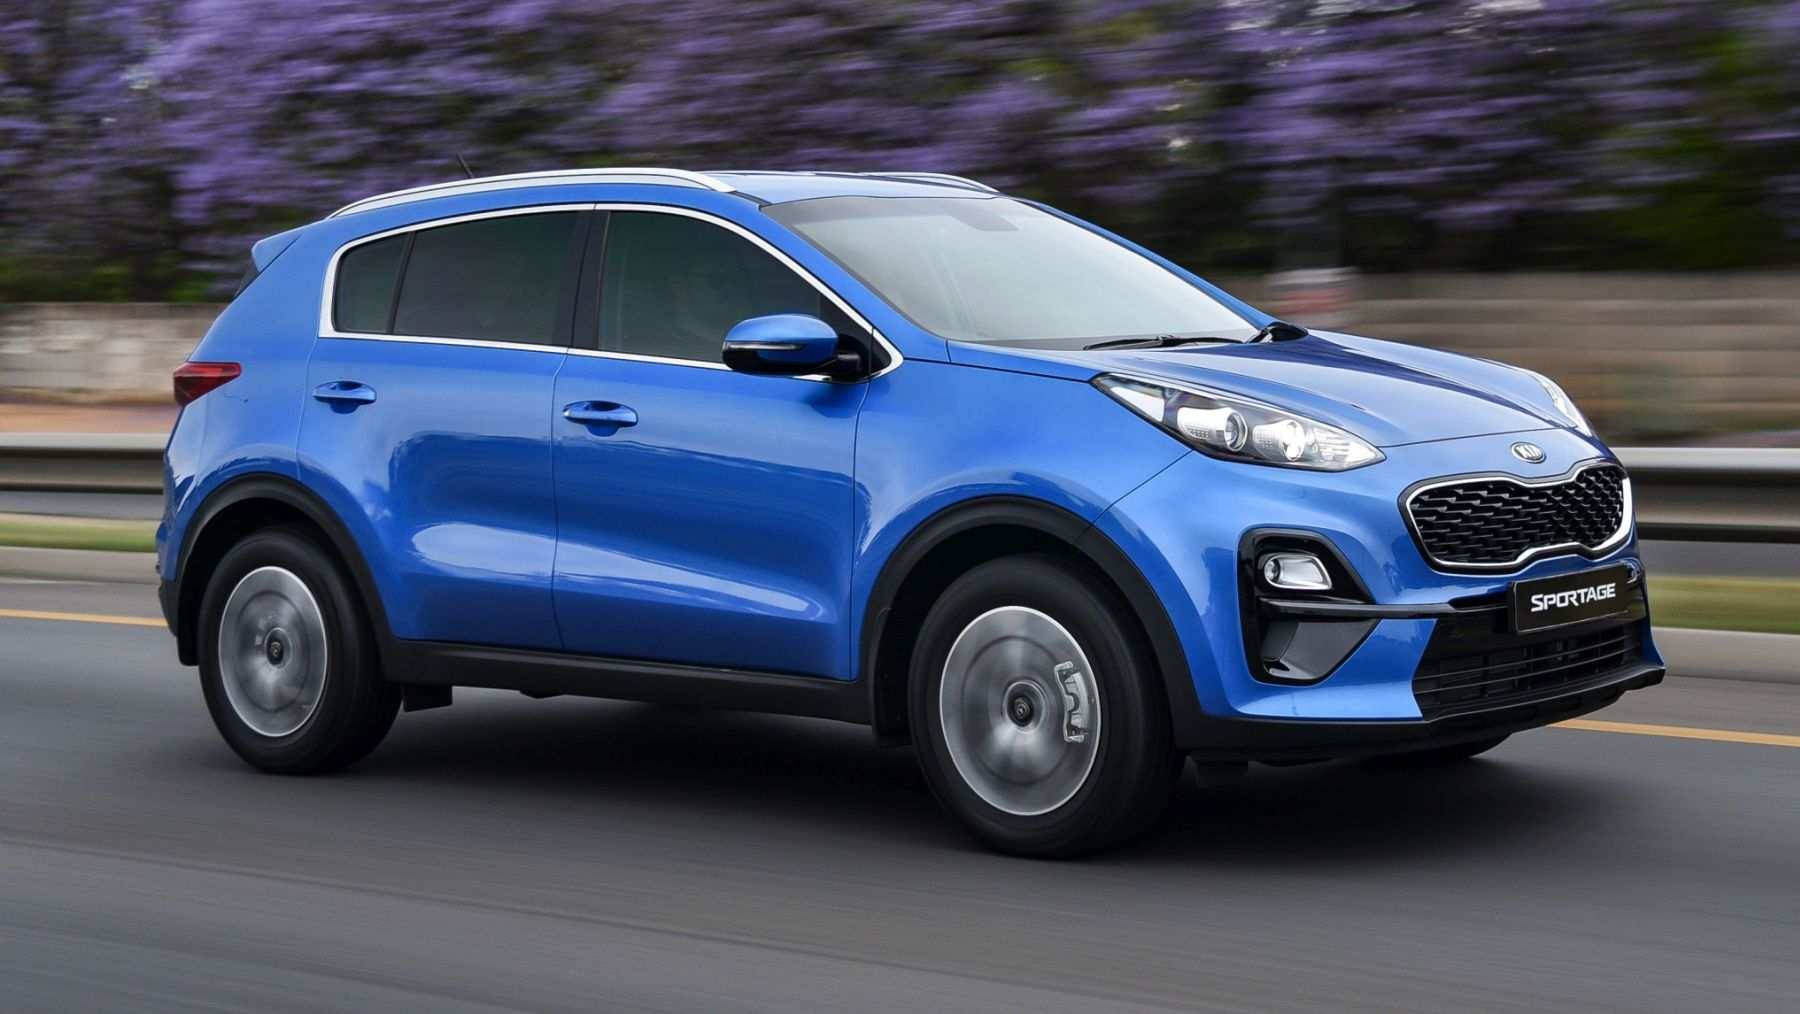 55 The Best Precio Sportage Kia 2019 New Engine Prices by Best Precio Sportage Kia 2019 New Engine